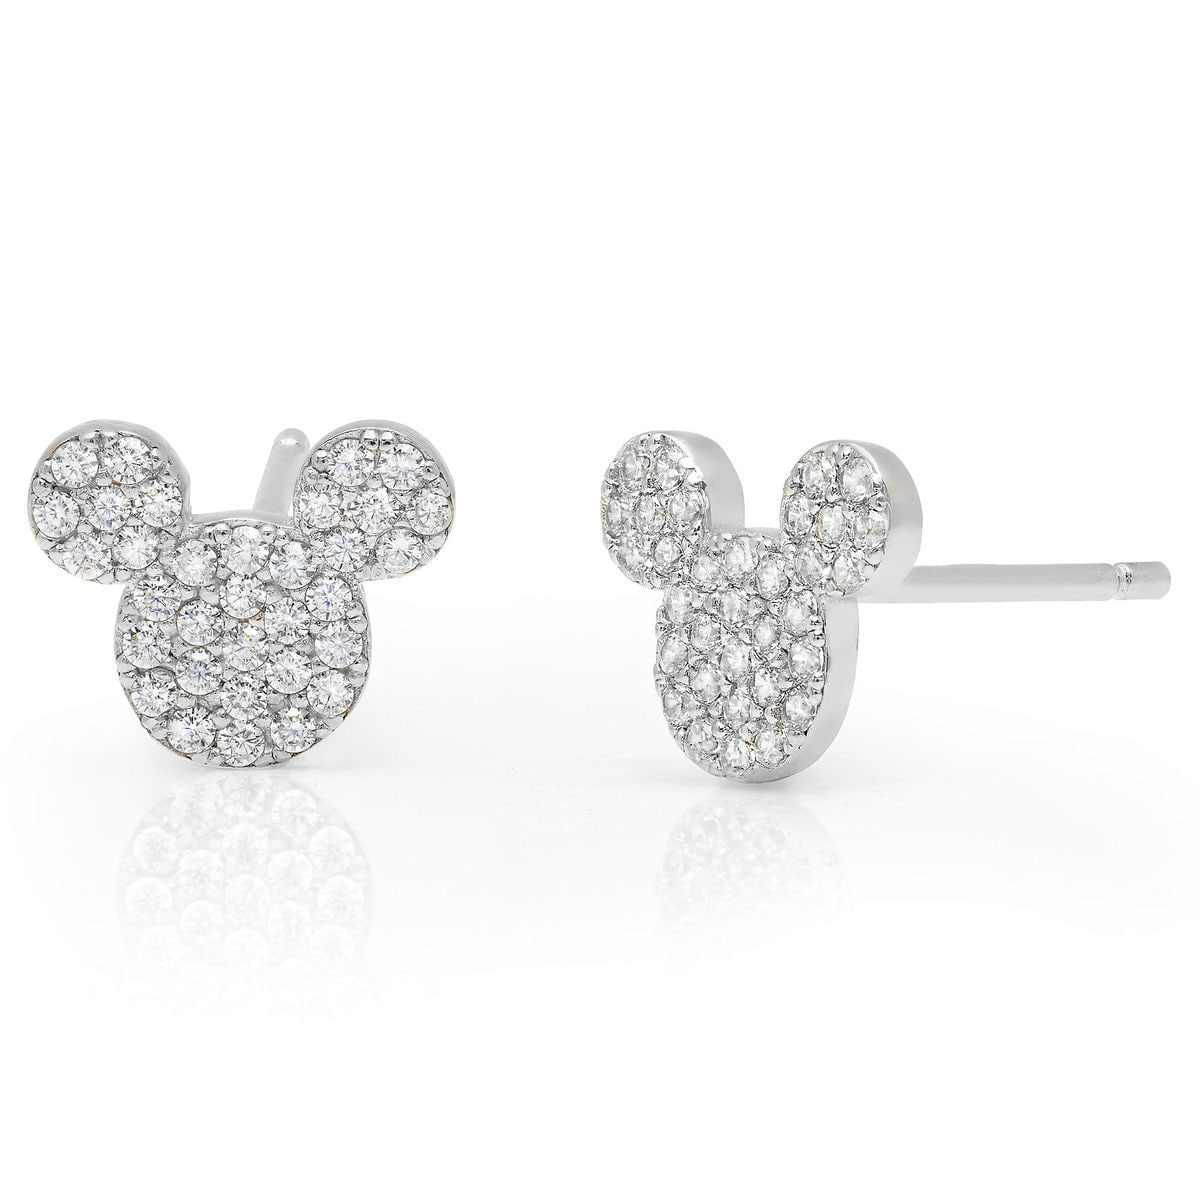 Product Image Of Mickey Mouse Icon Stud Earrings By Crislu Platinum 1